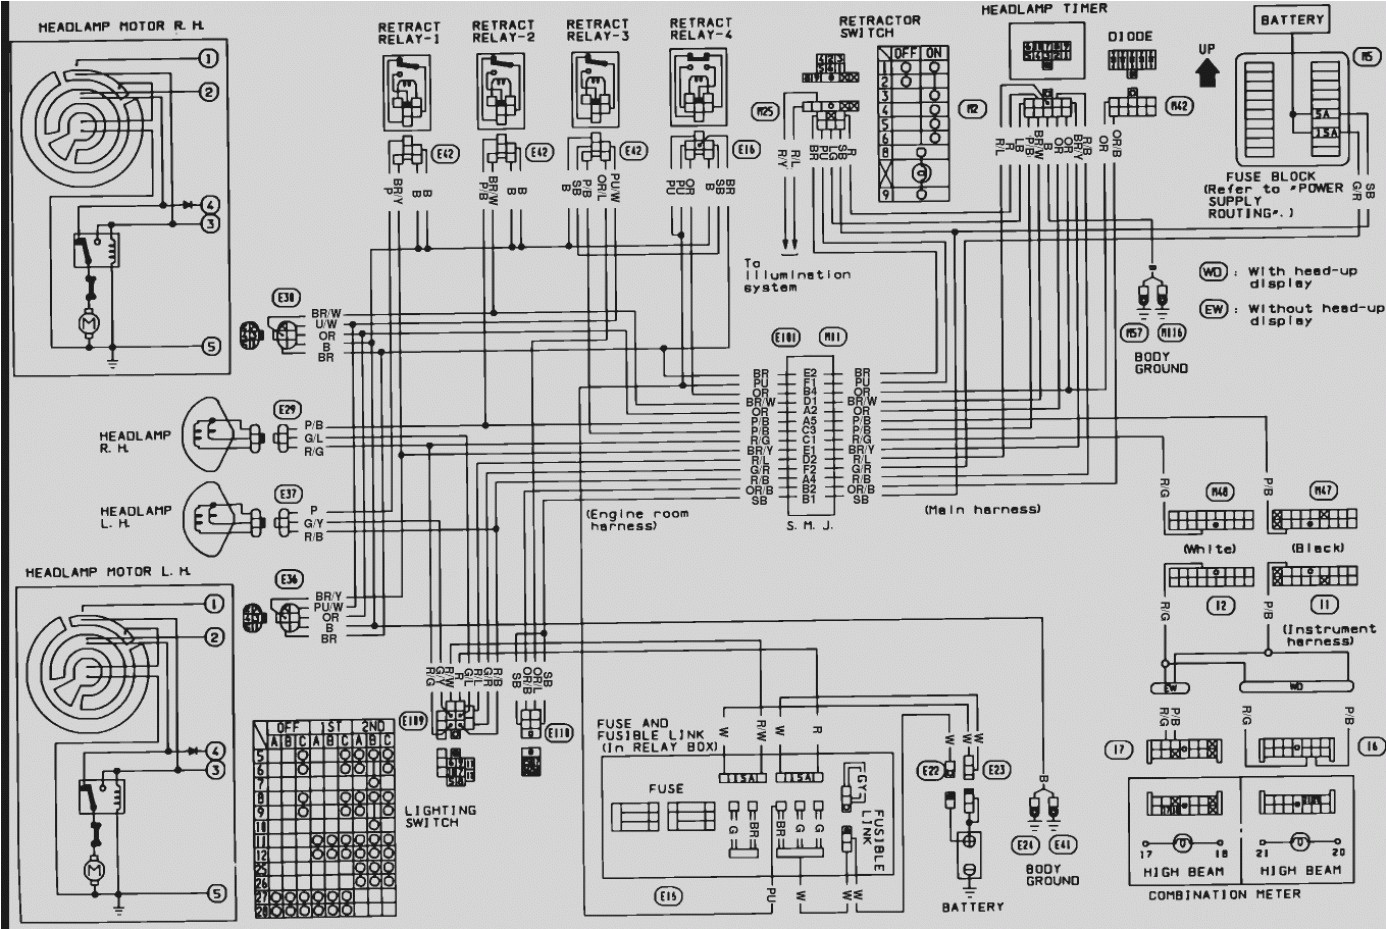 91 nissan 240sx wiring diagram wiring diagram host 91 nissan 240sx wiring diagrams free download diagram